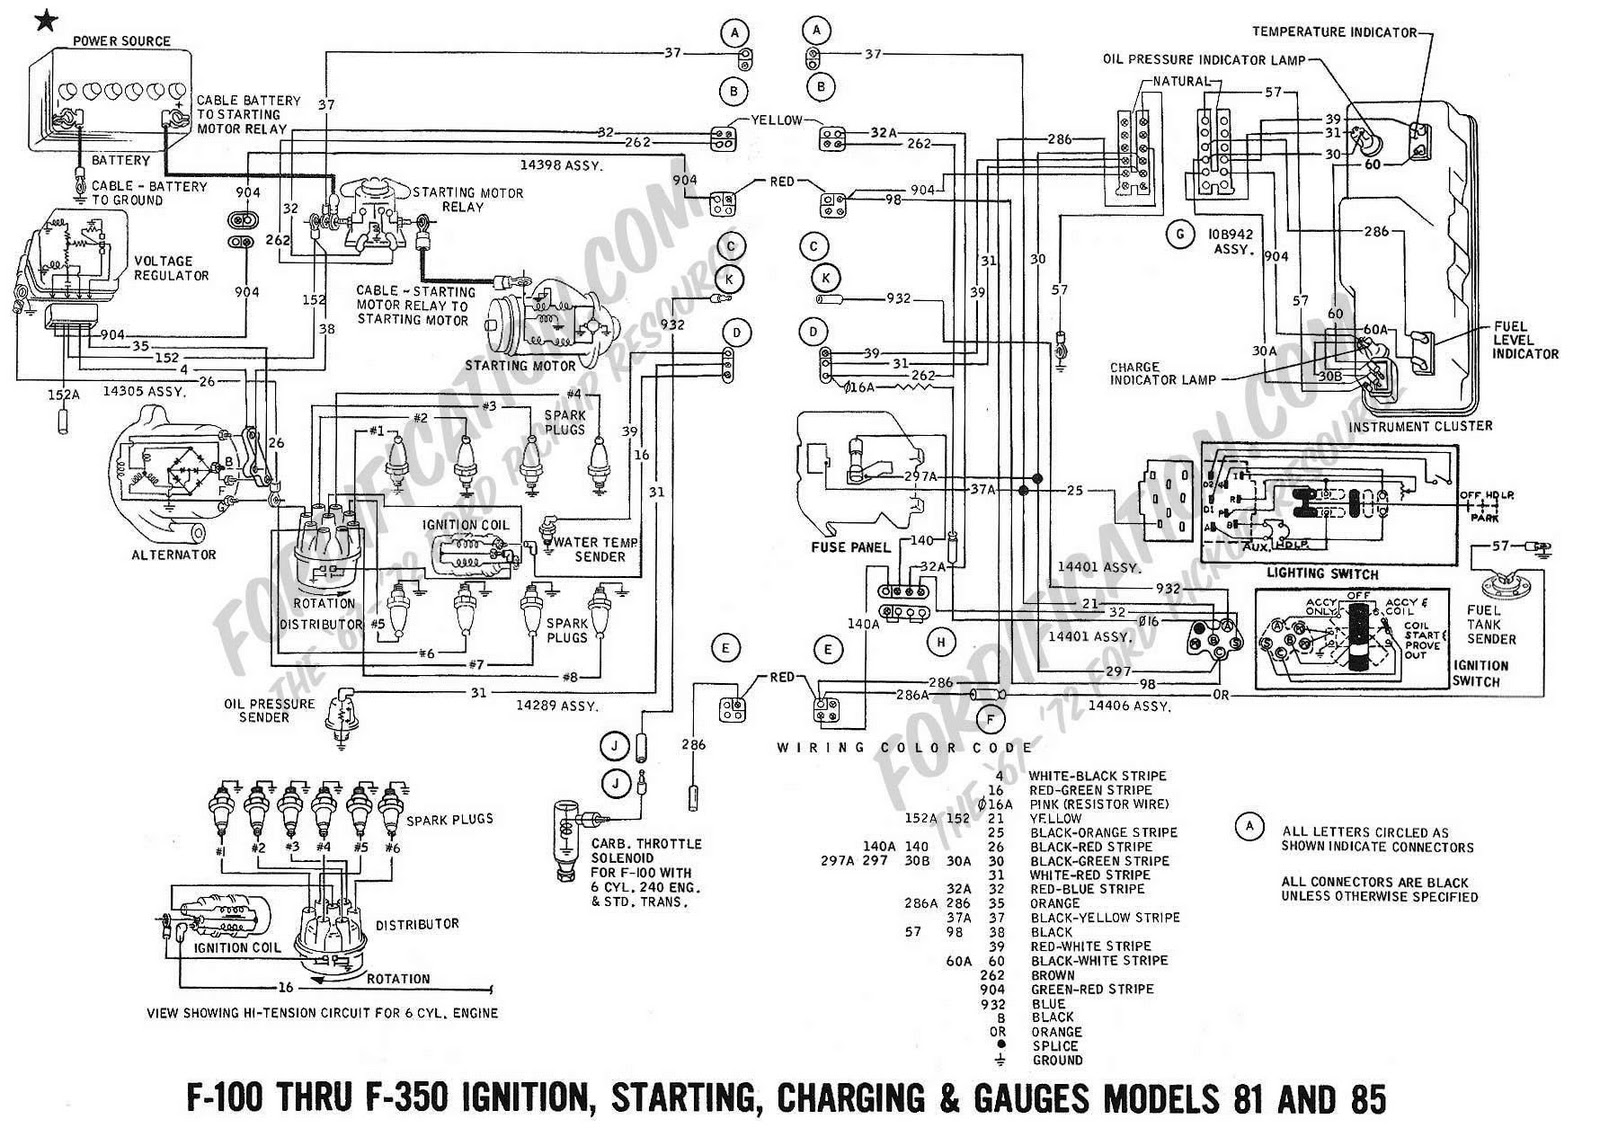 medium resolution of ford f250 wiring diagram wire management wiring diagram ford f250 wiring diagram for trailer plug ford f250 wiring diagram